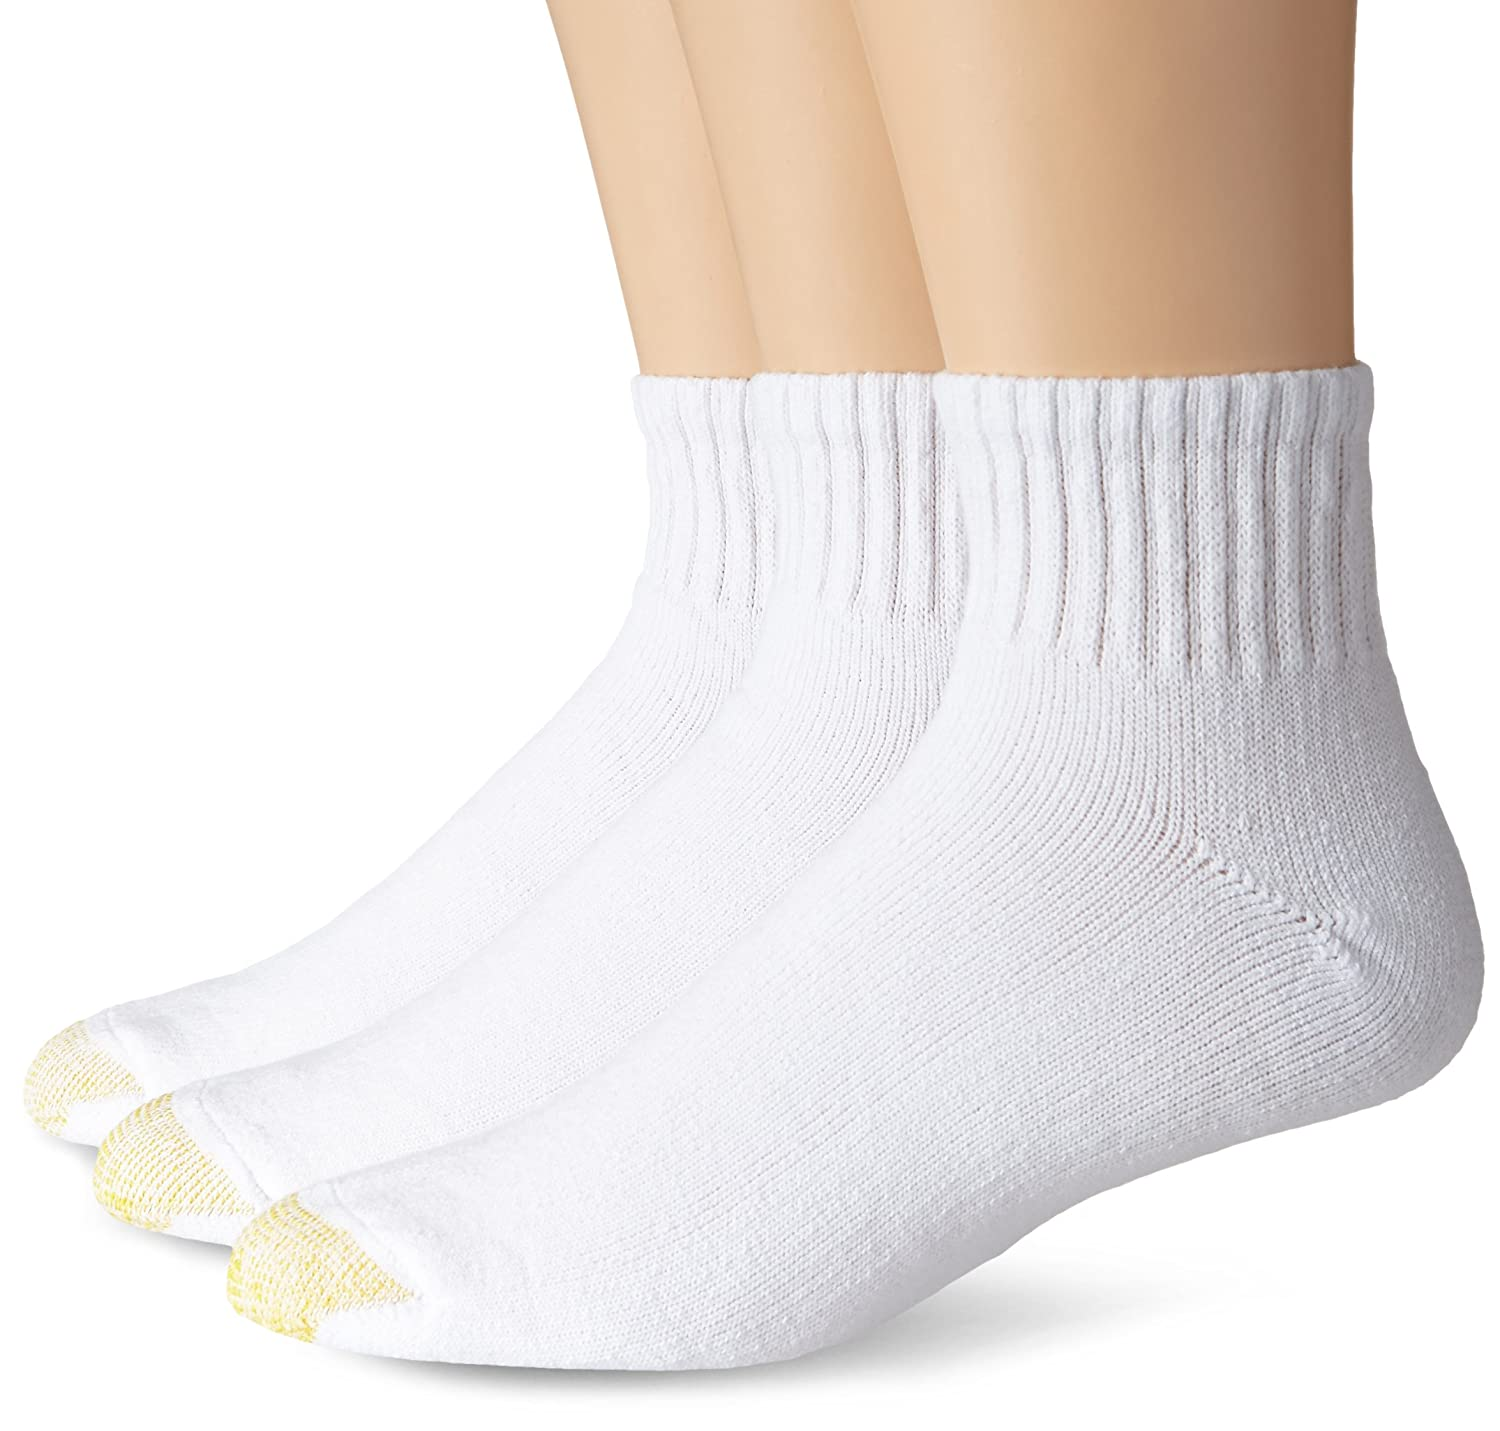 Gold Toe Men's Ultra Tec Quarter Three-Pack Extended Socks White 13-15 Gold Toe Moretz - Men's 2186E